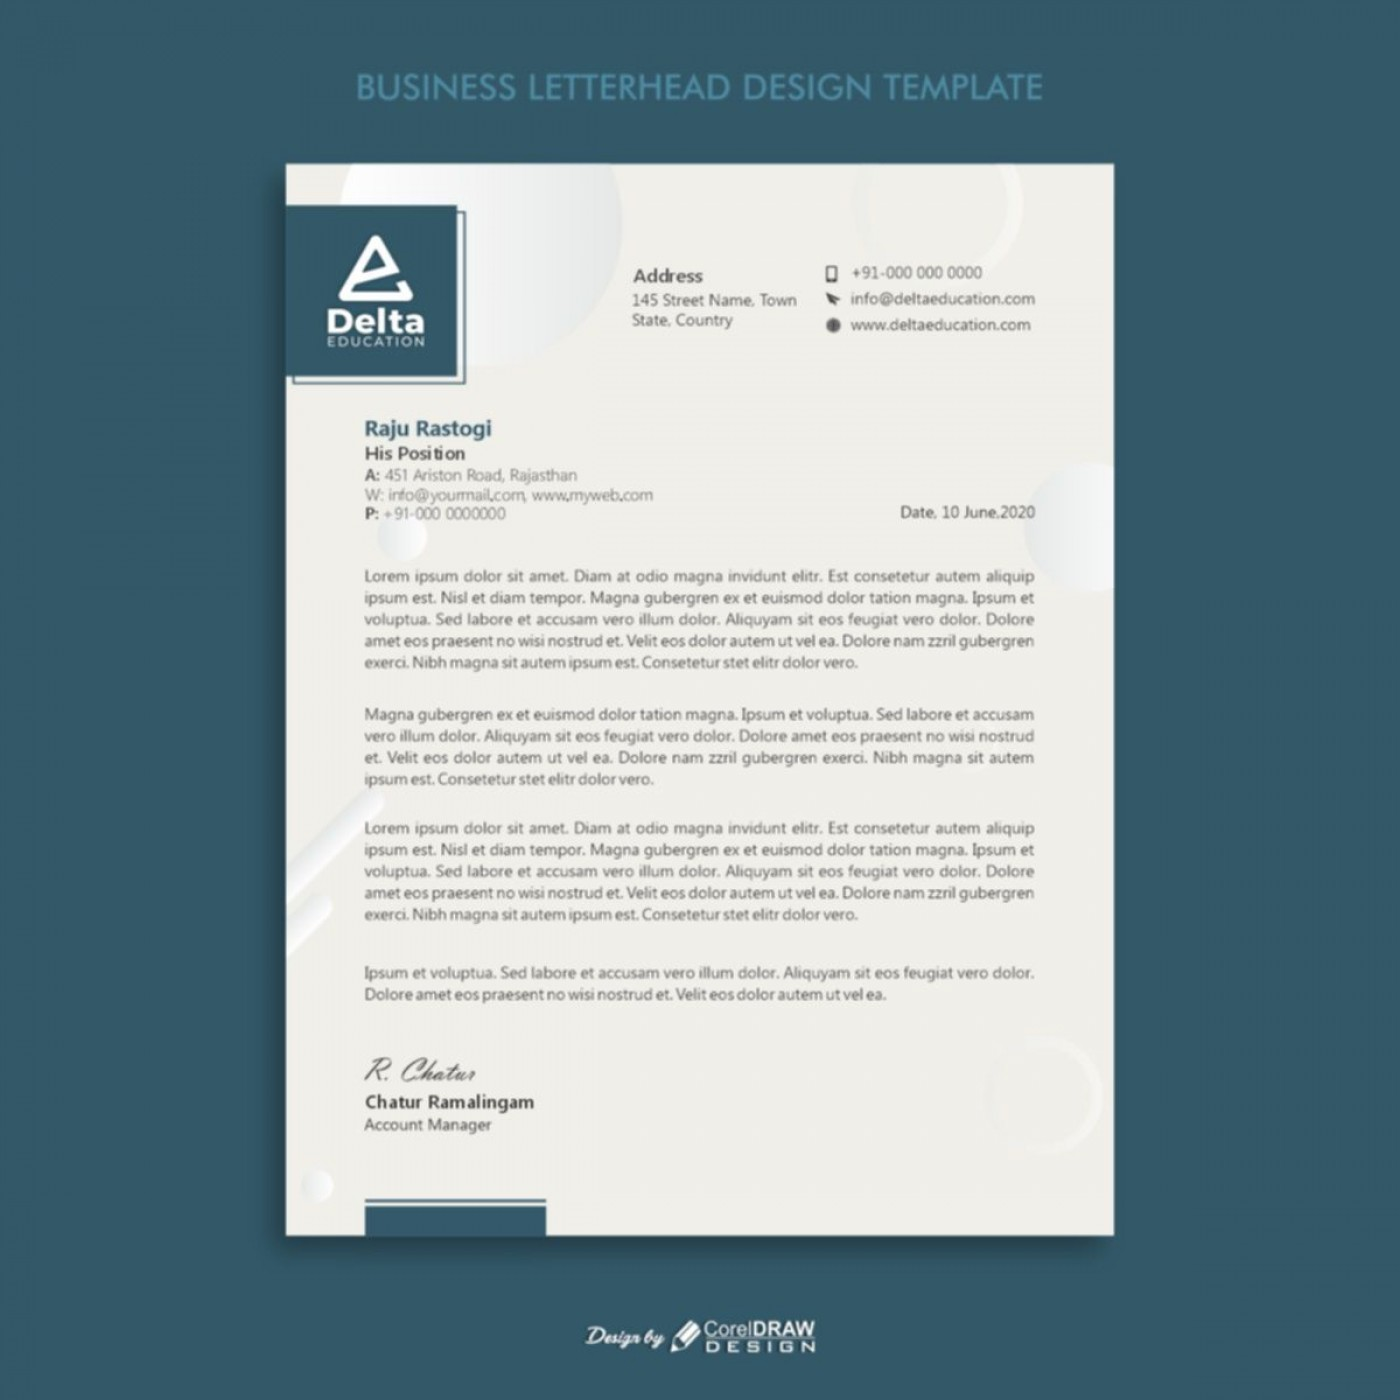 002 Formidable Letterhead Template Free Download Cdr Sample 1400